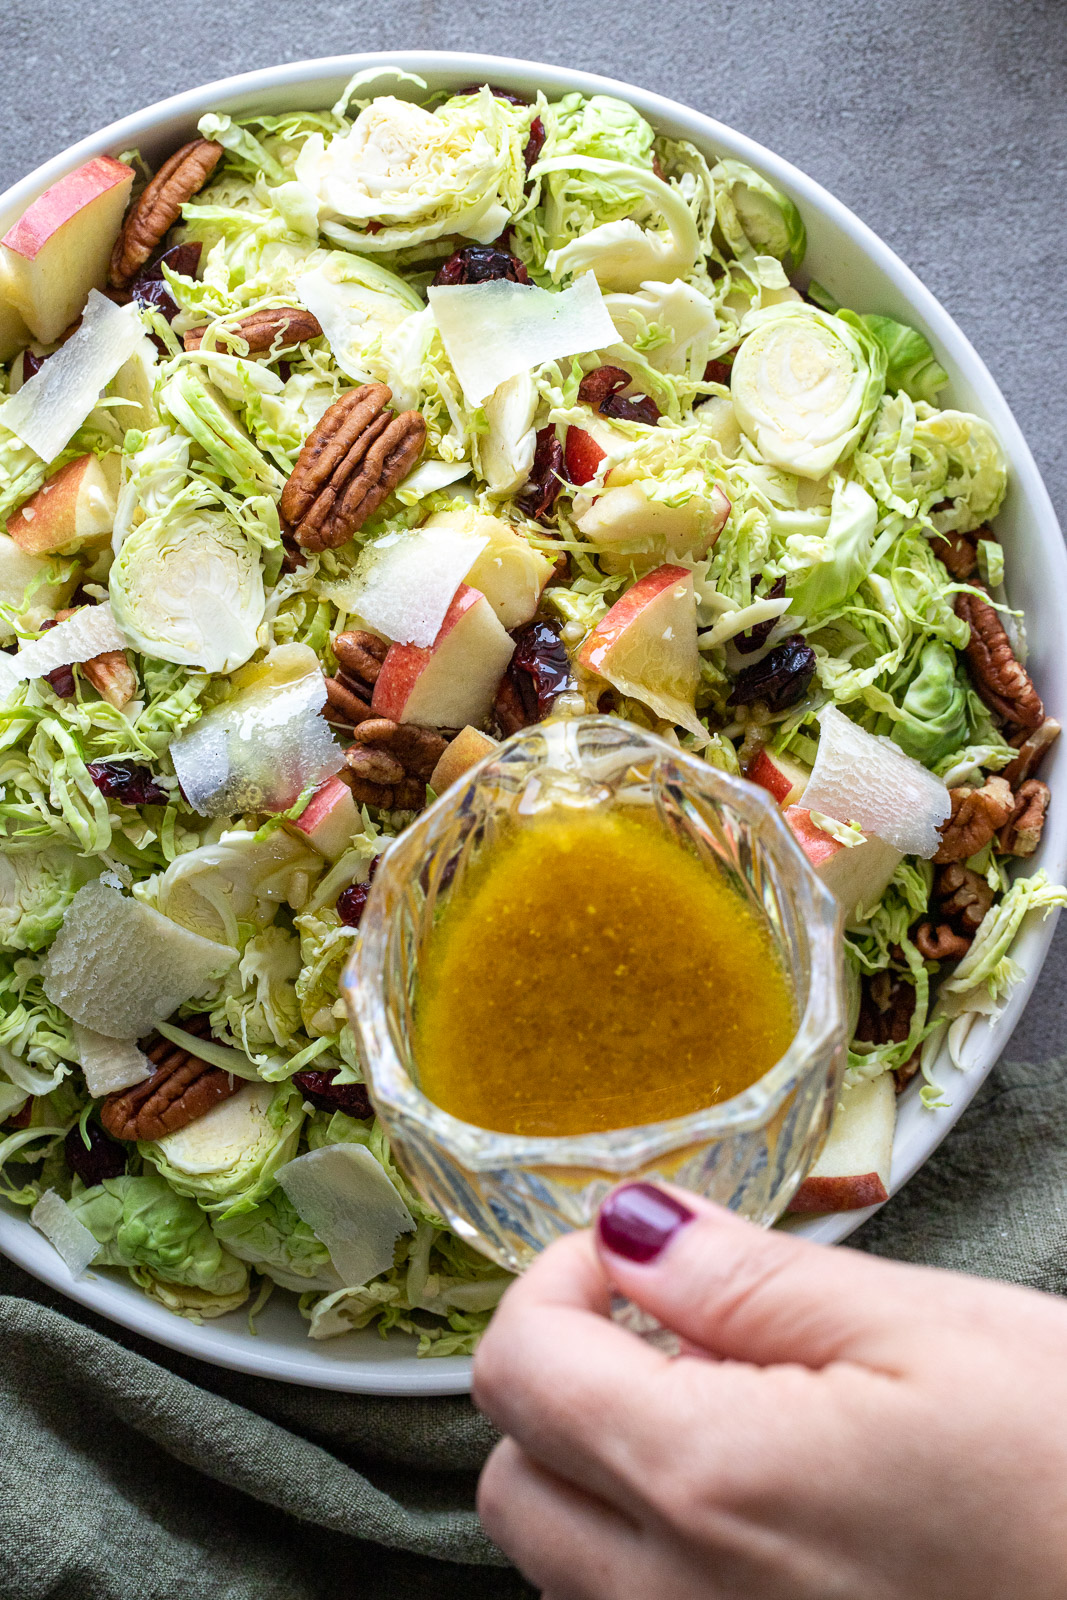 Woman pouring maple dressing over a brussel sprouts salad.